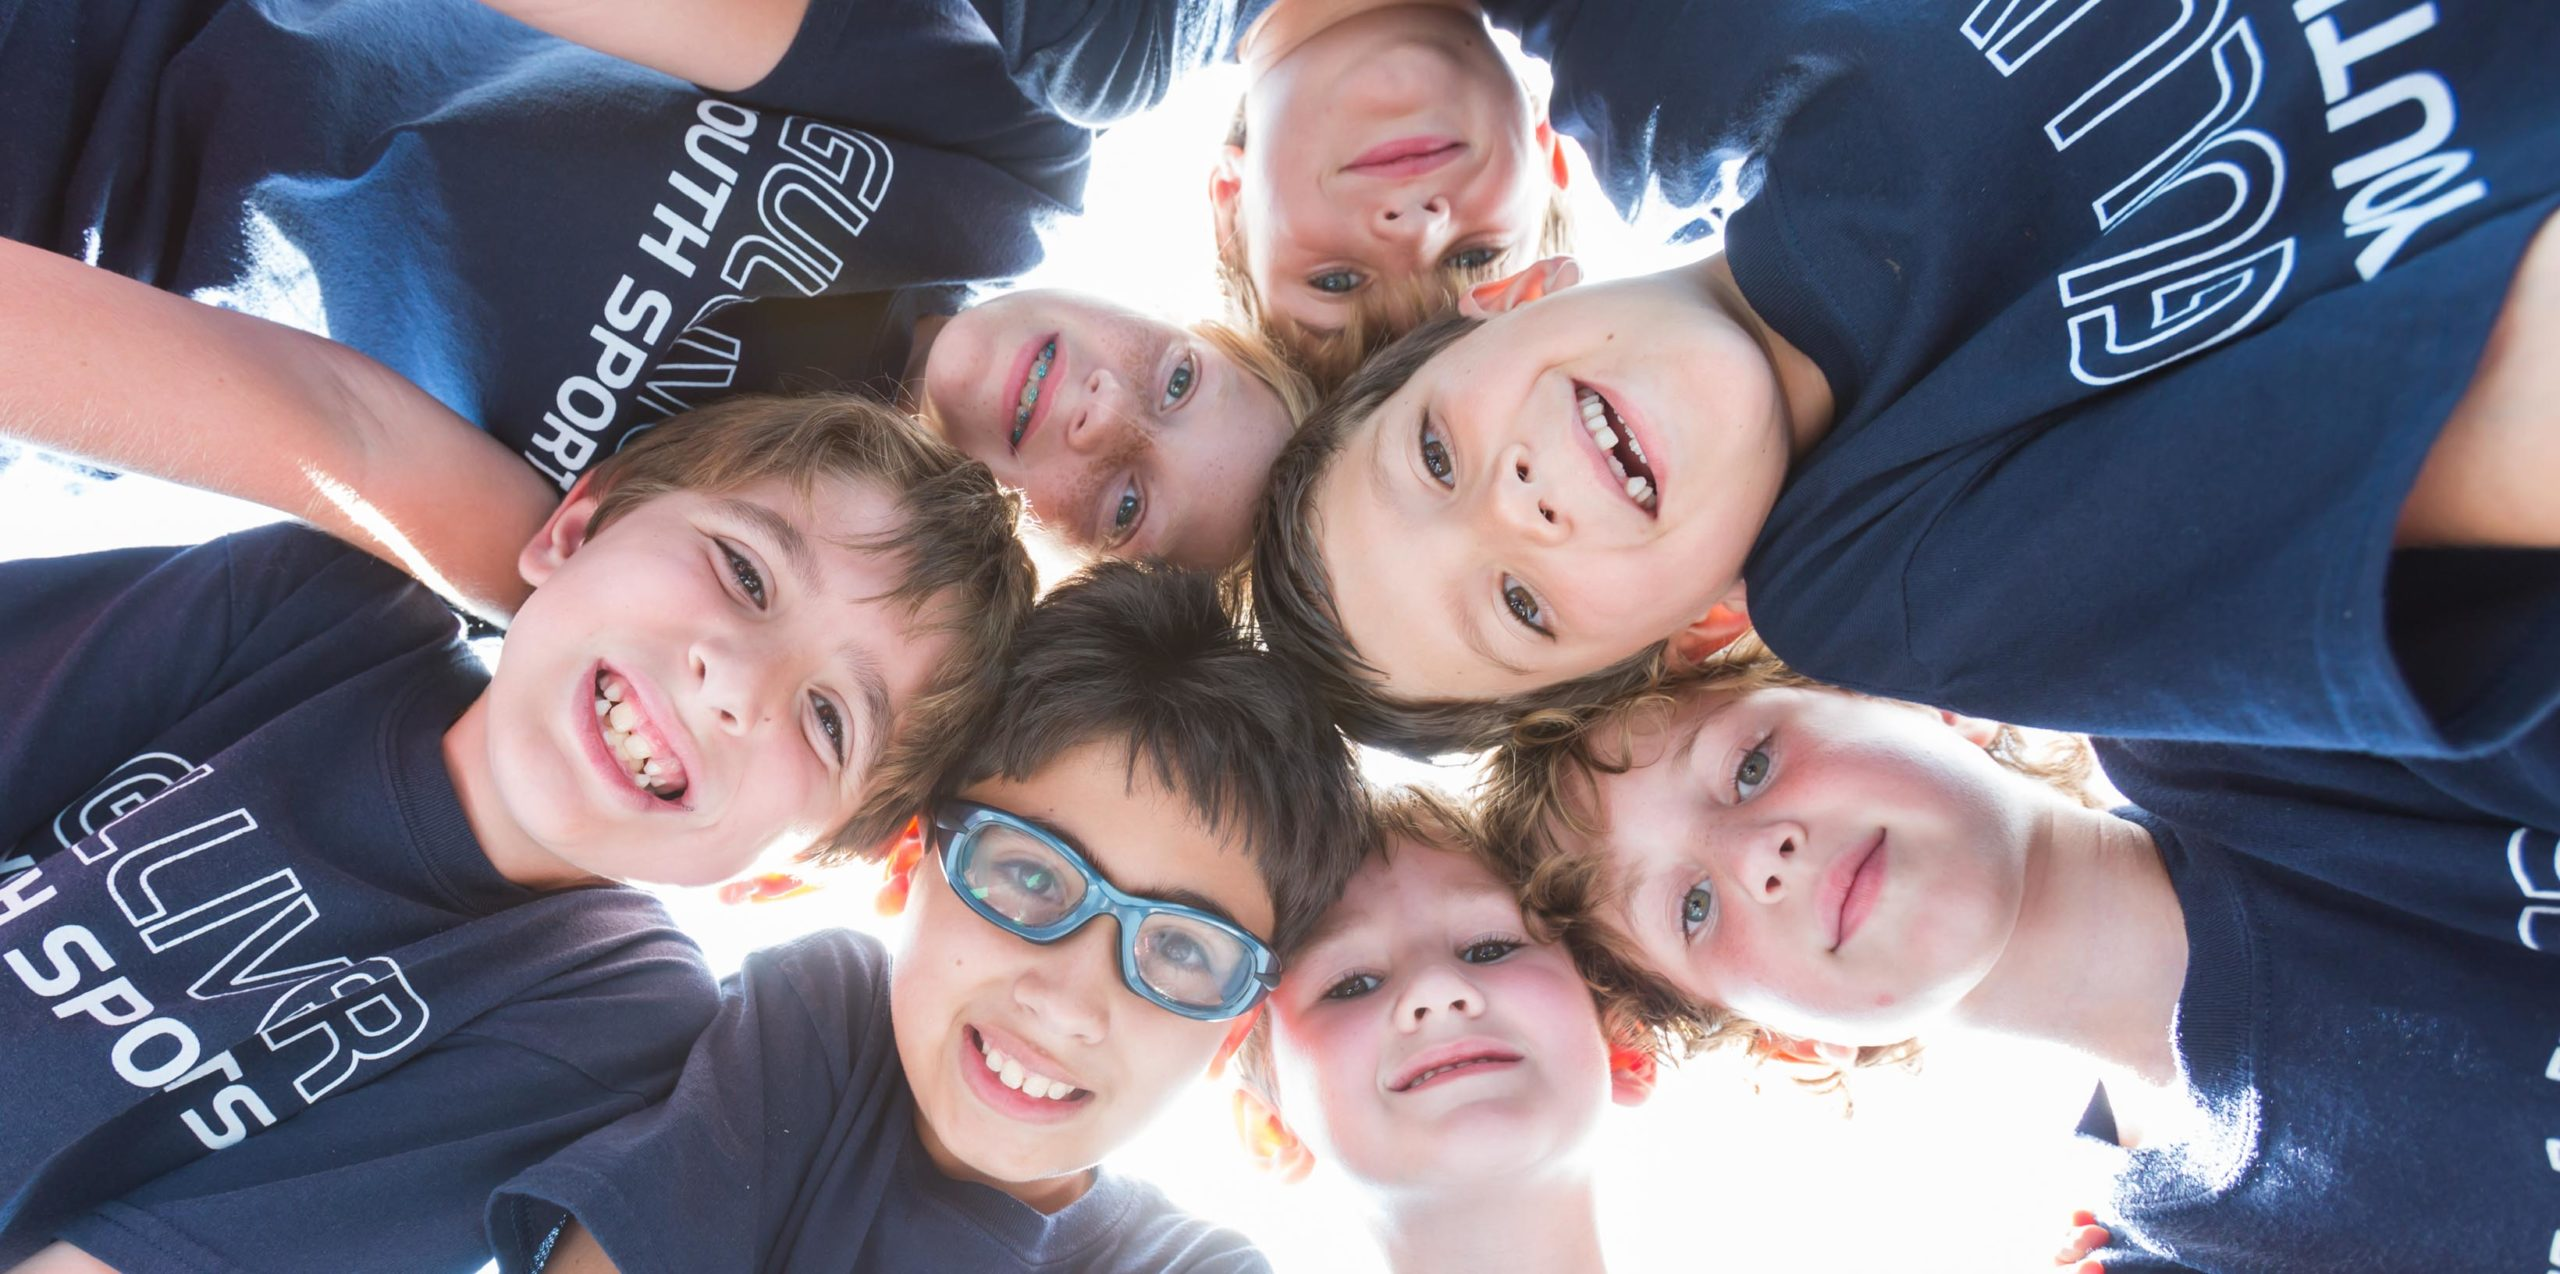 Young students in a circle smiling and looking down